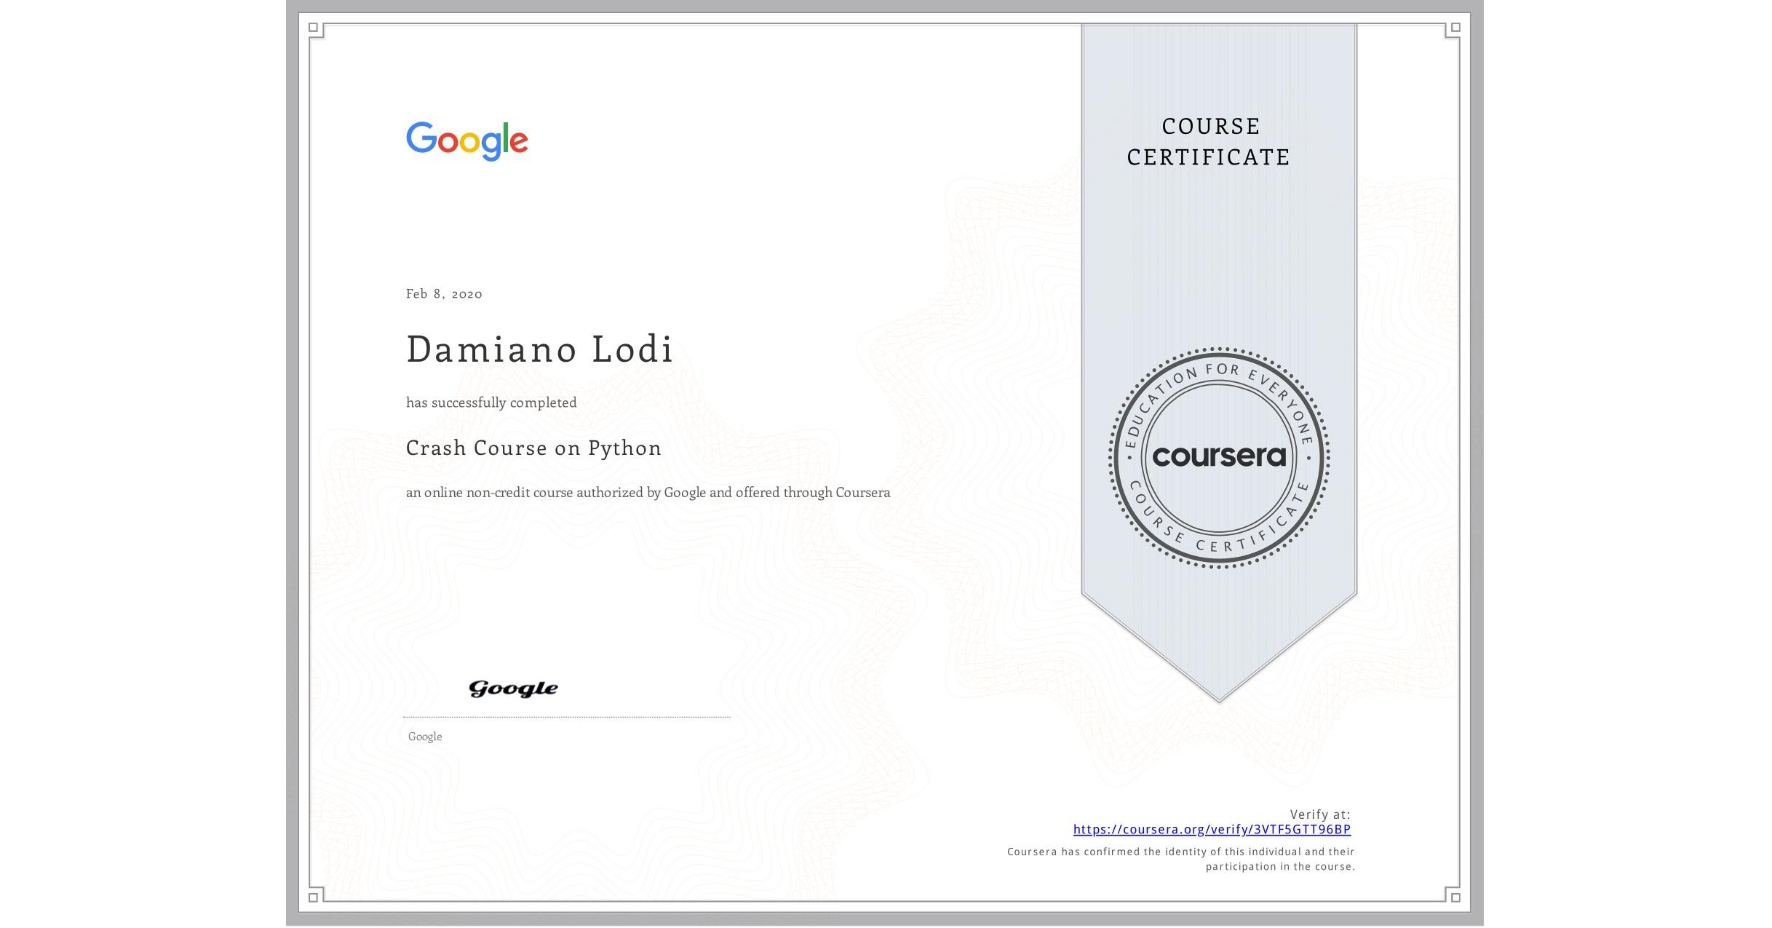 View certificate for Damiano Lodi, Crash Course on Python, an online non-credit course authorized by Google and offered through Coursera